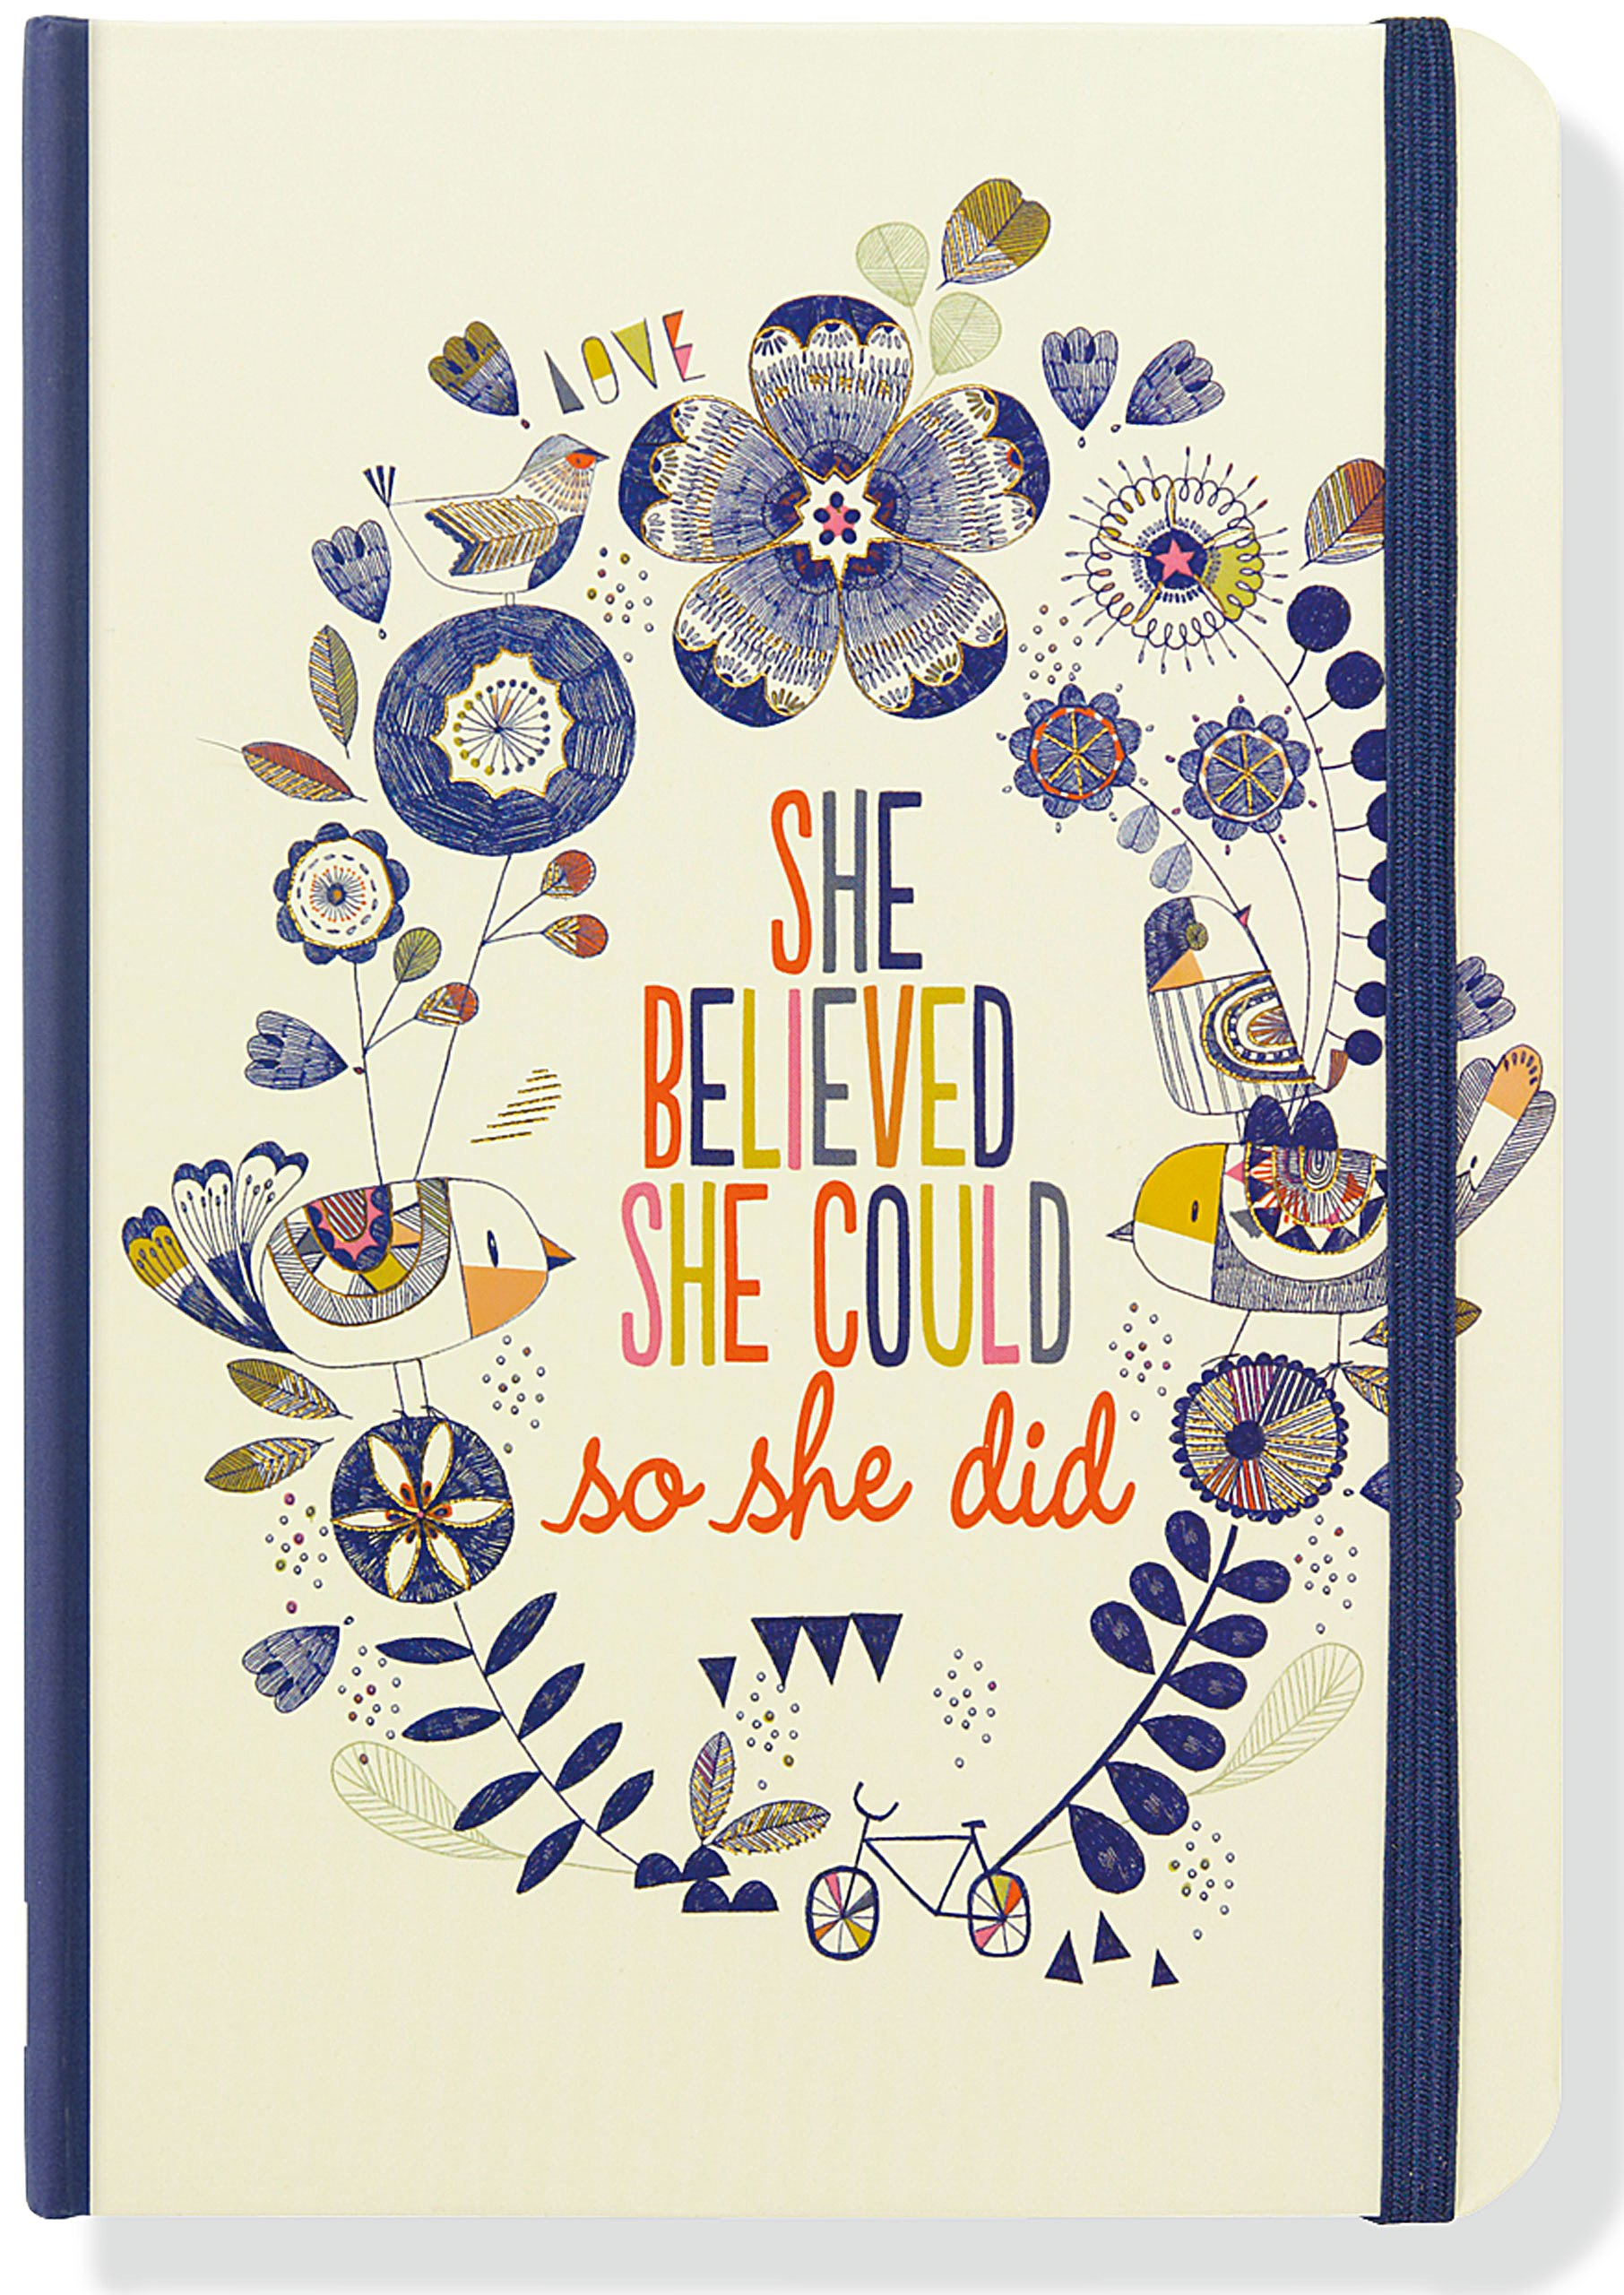 Believed Could Journal Notebook Diary product image